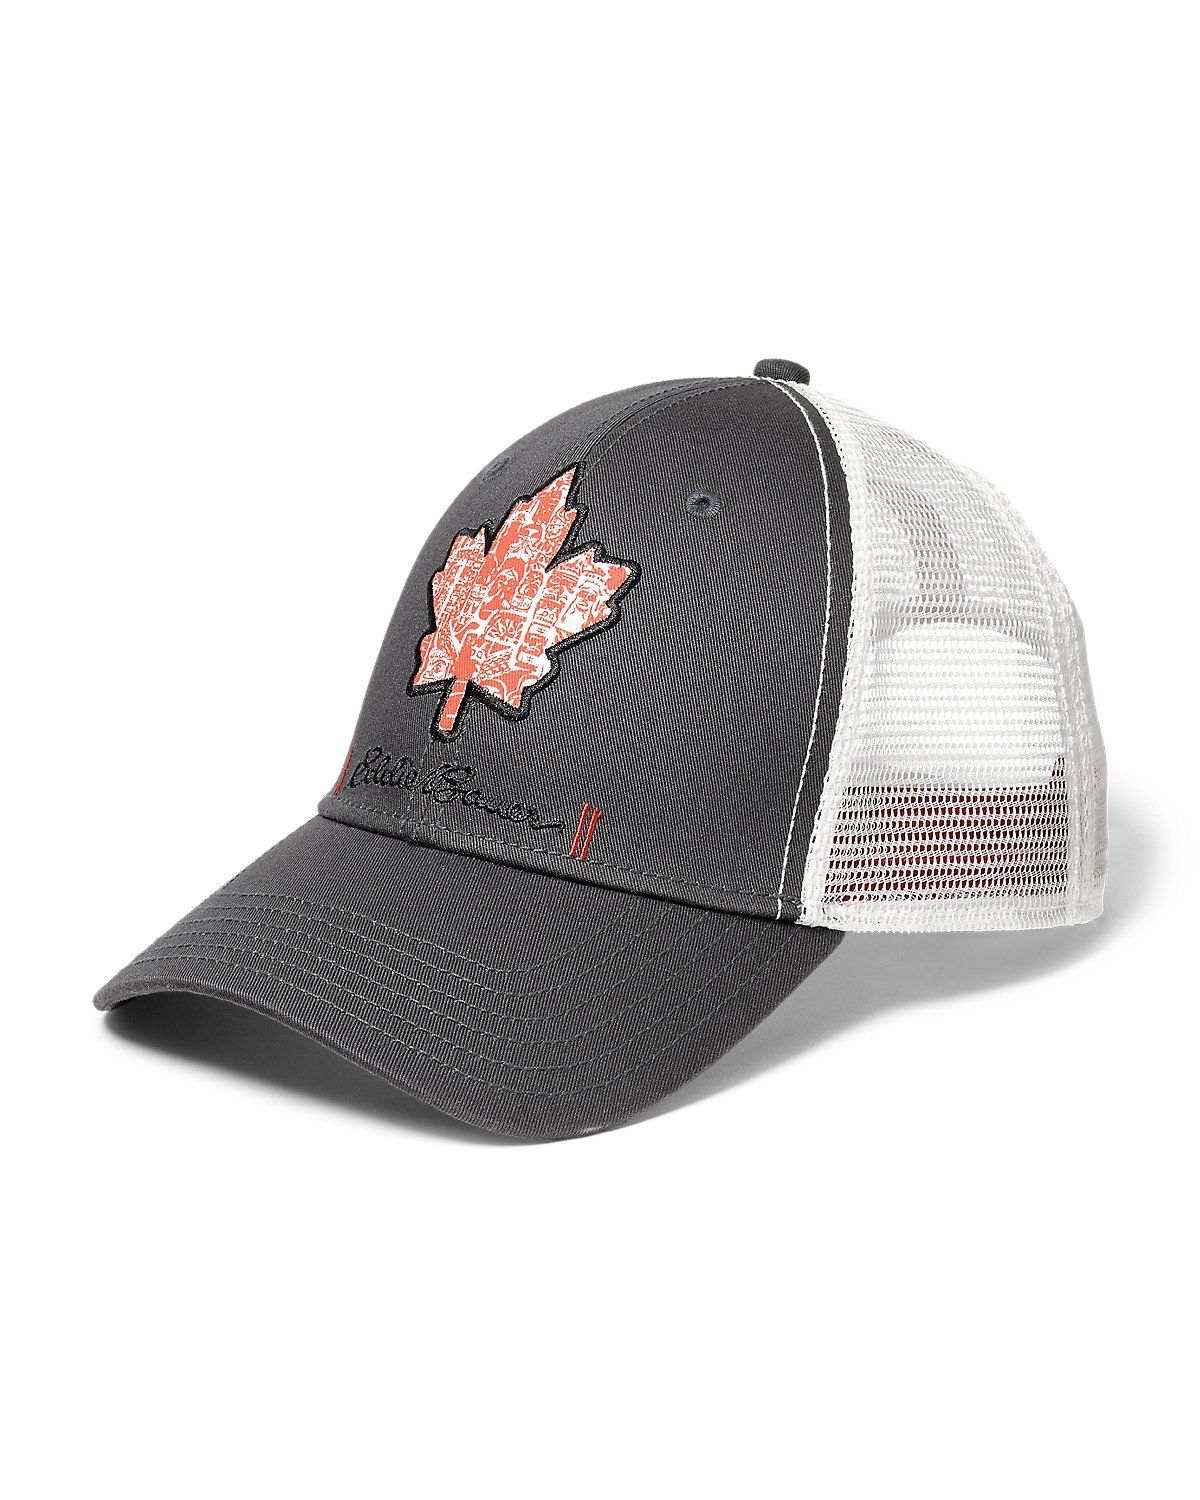 7a497ed2 Graphic Cap - Maple Leaf | Eddie Bauer | Accessories | Outdoor ...